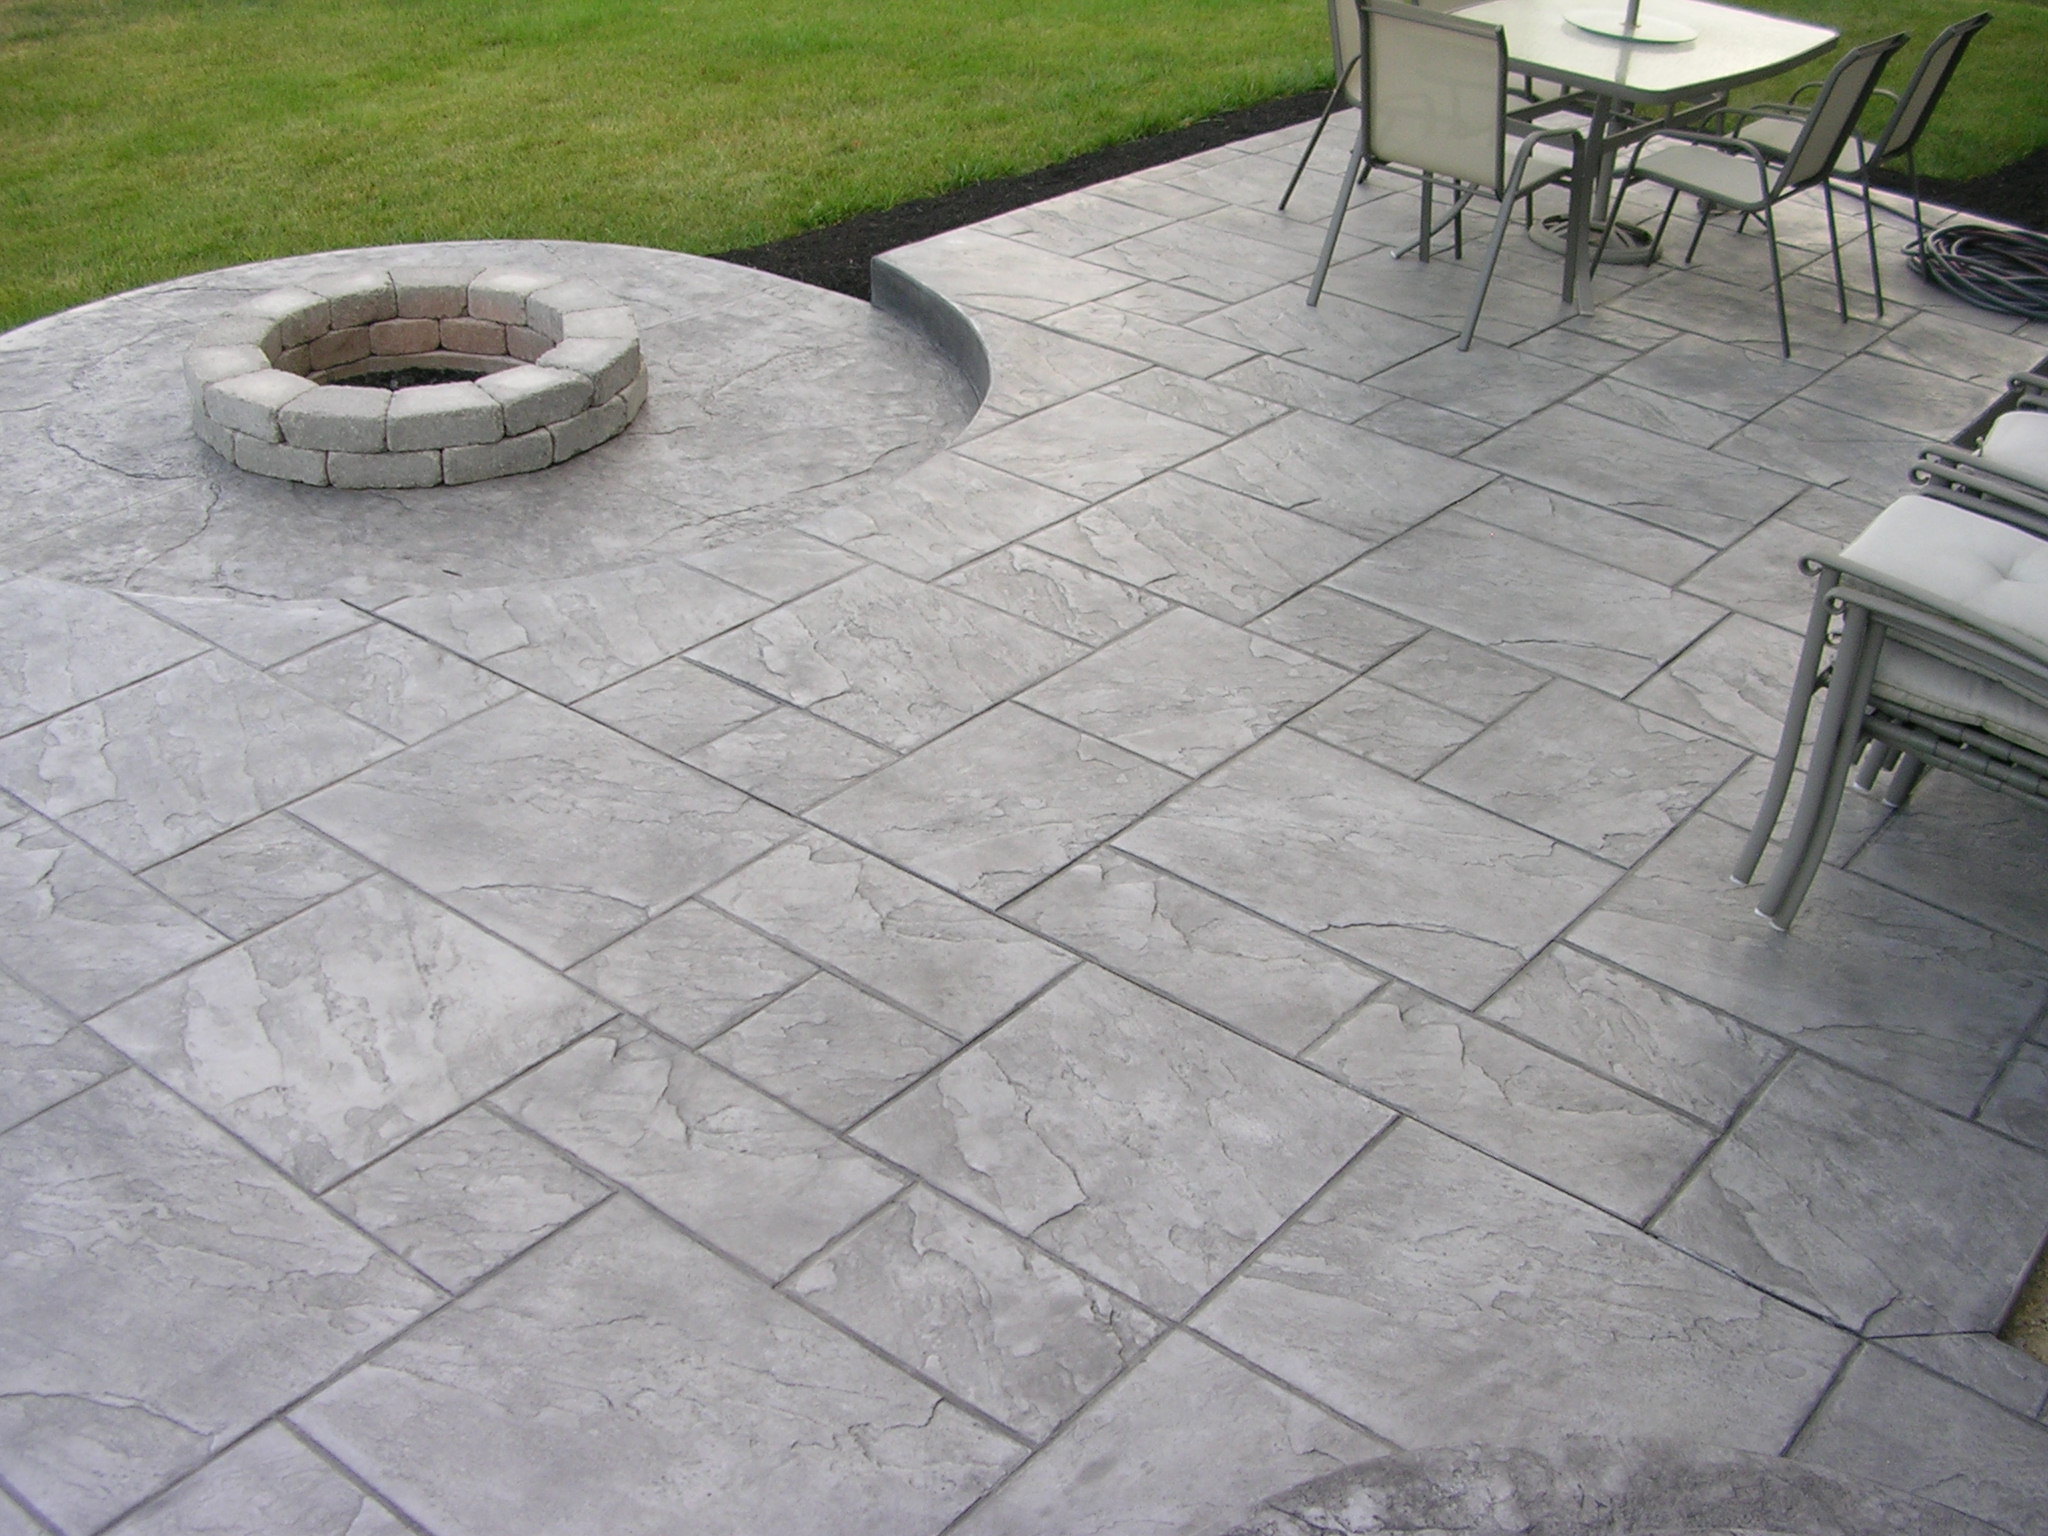 Concrete Patio Design Ideas i like the idea of rounded stairs coming from our patio door View In Gallery Stamped Concrete Patio Ideas To Bring Your Patio Backyard Or Frontyard More Welcoming Space